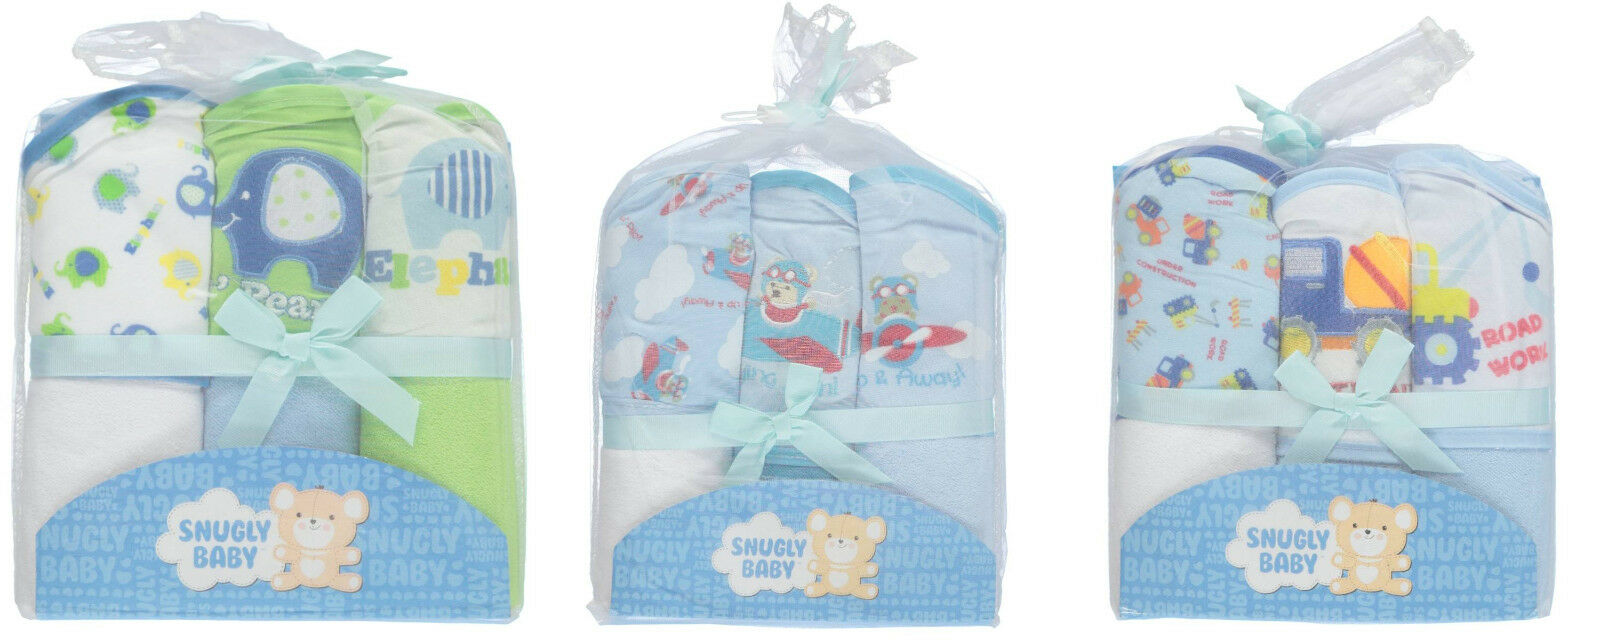 Snugly Baby Boys Hooded Towels 3-pack BRAND NEW!!!!!